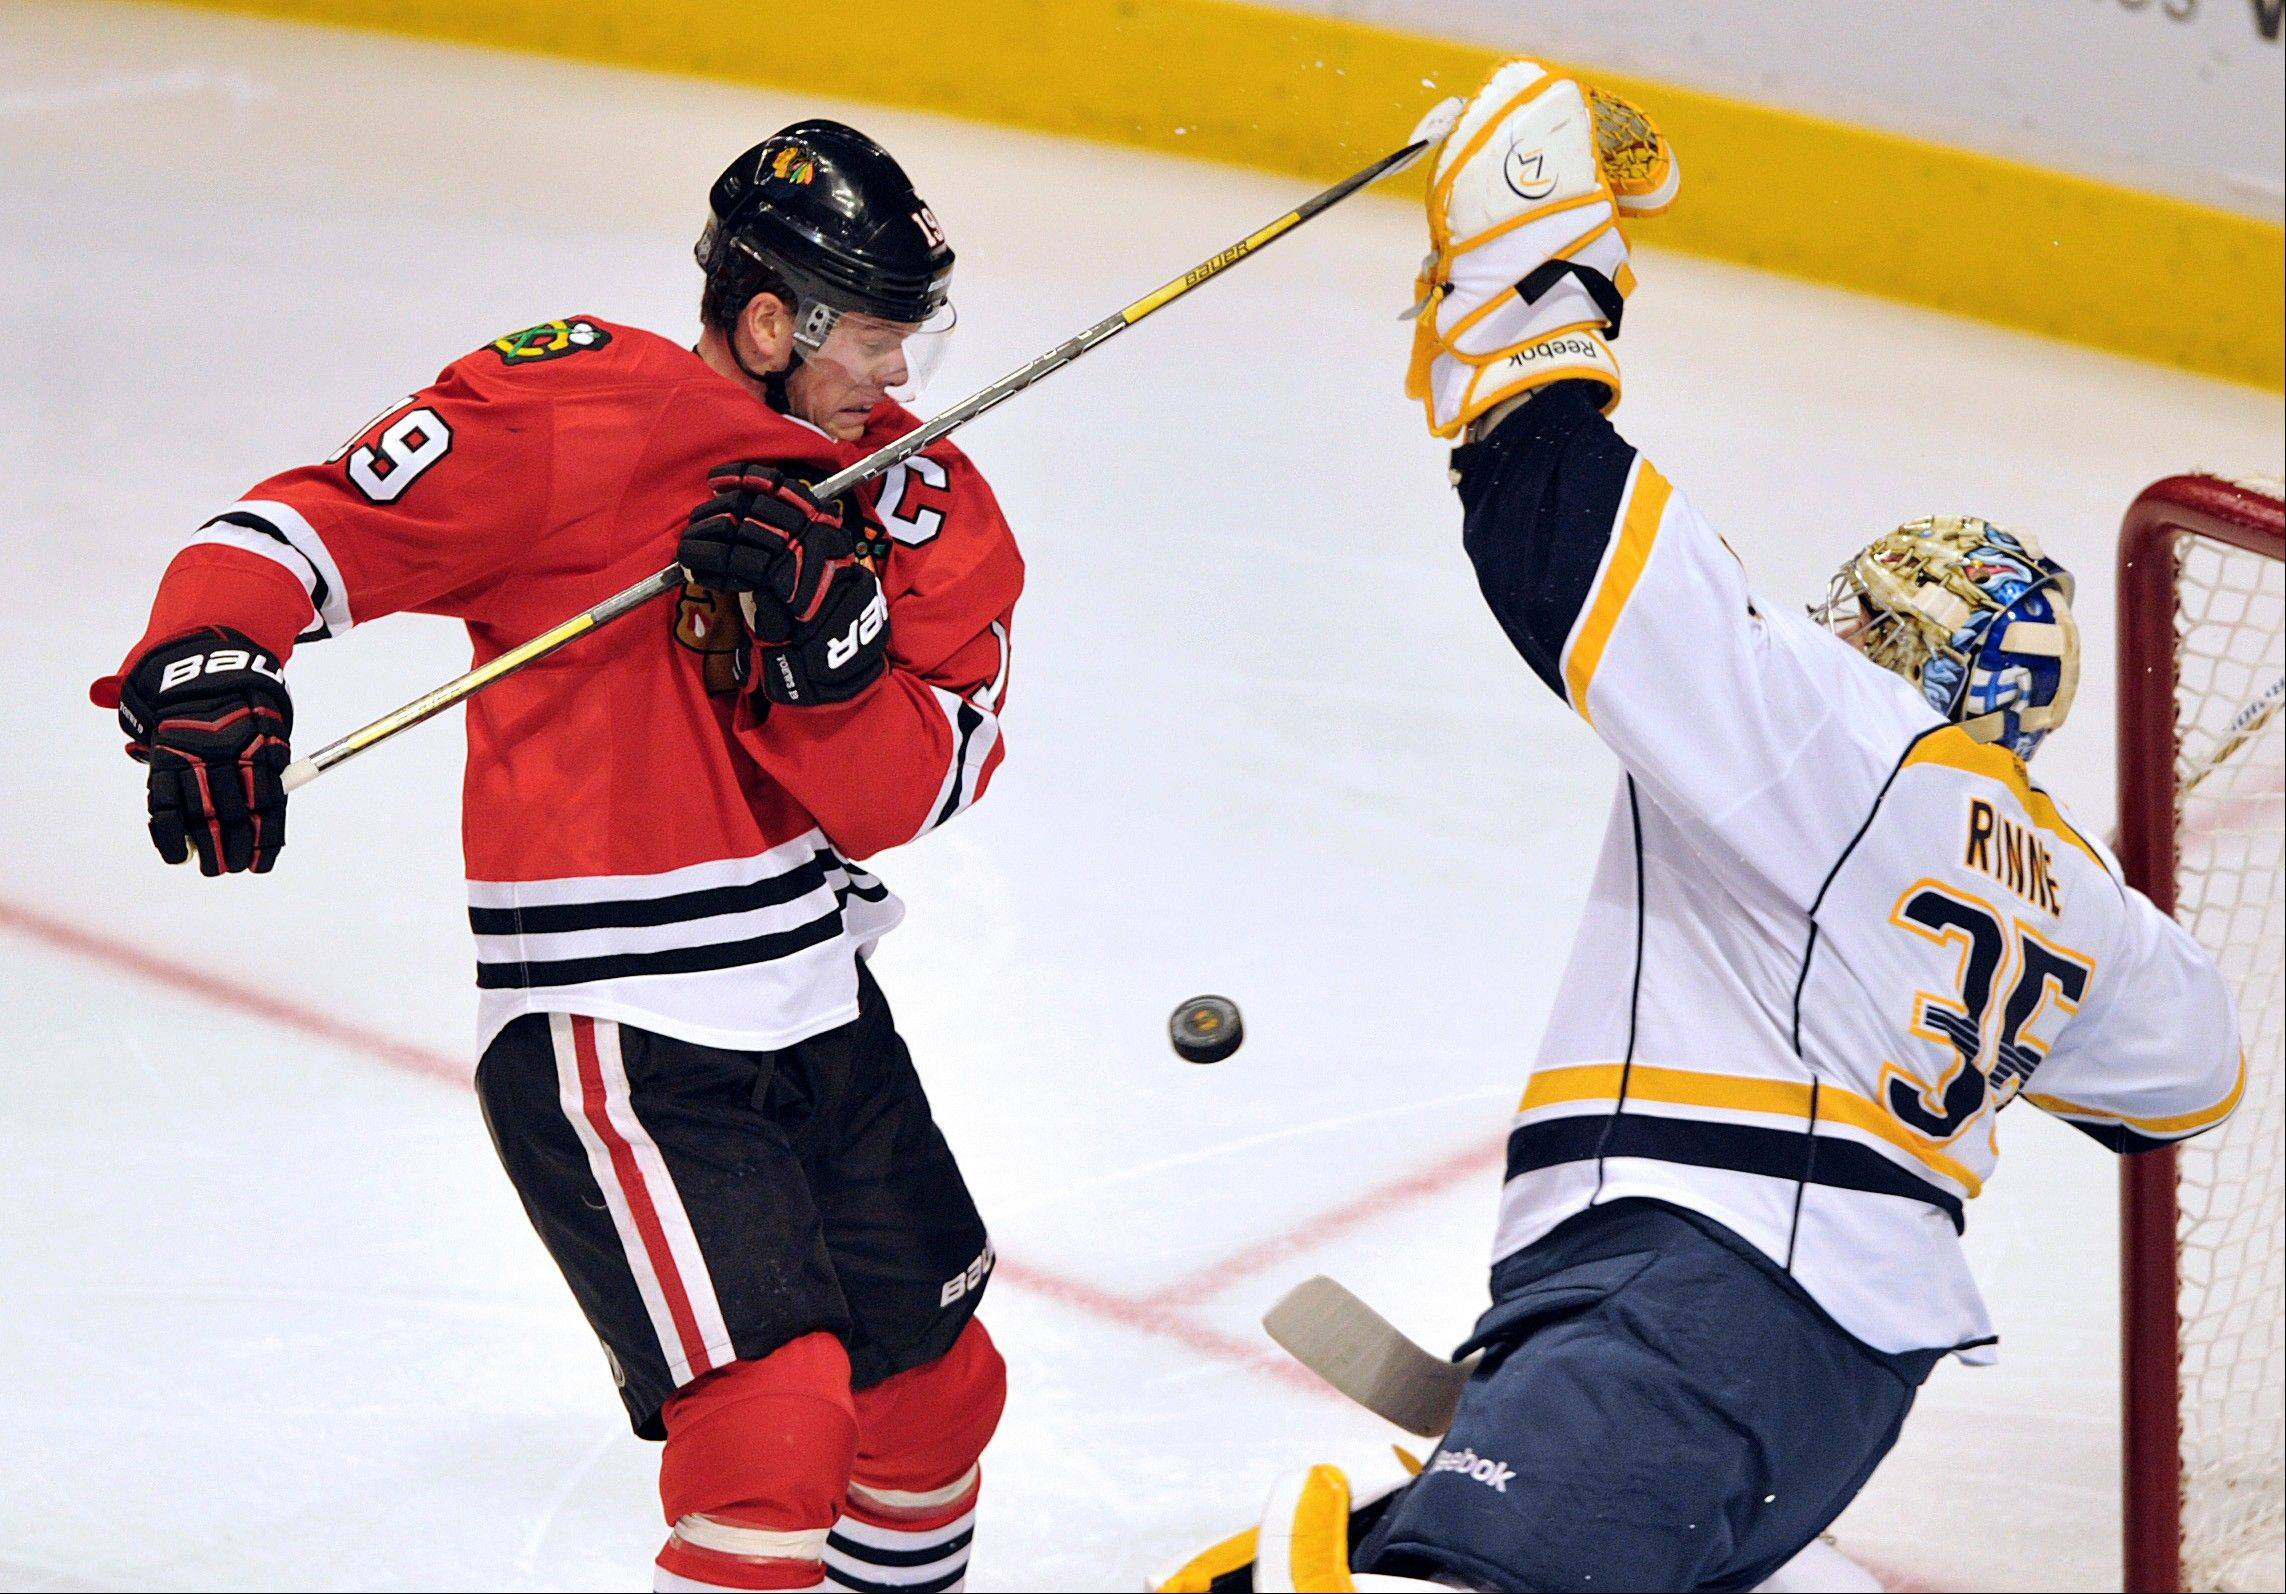 Chicago Blackhawks' Jonathan Toews, left, tries to tip in the puck as Nashville Predators' Pekka Rinne (35) blocks the shot during the second period.